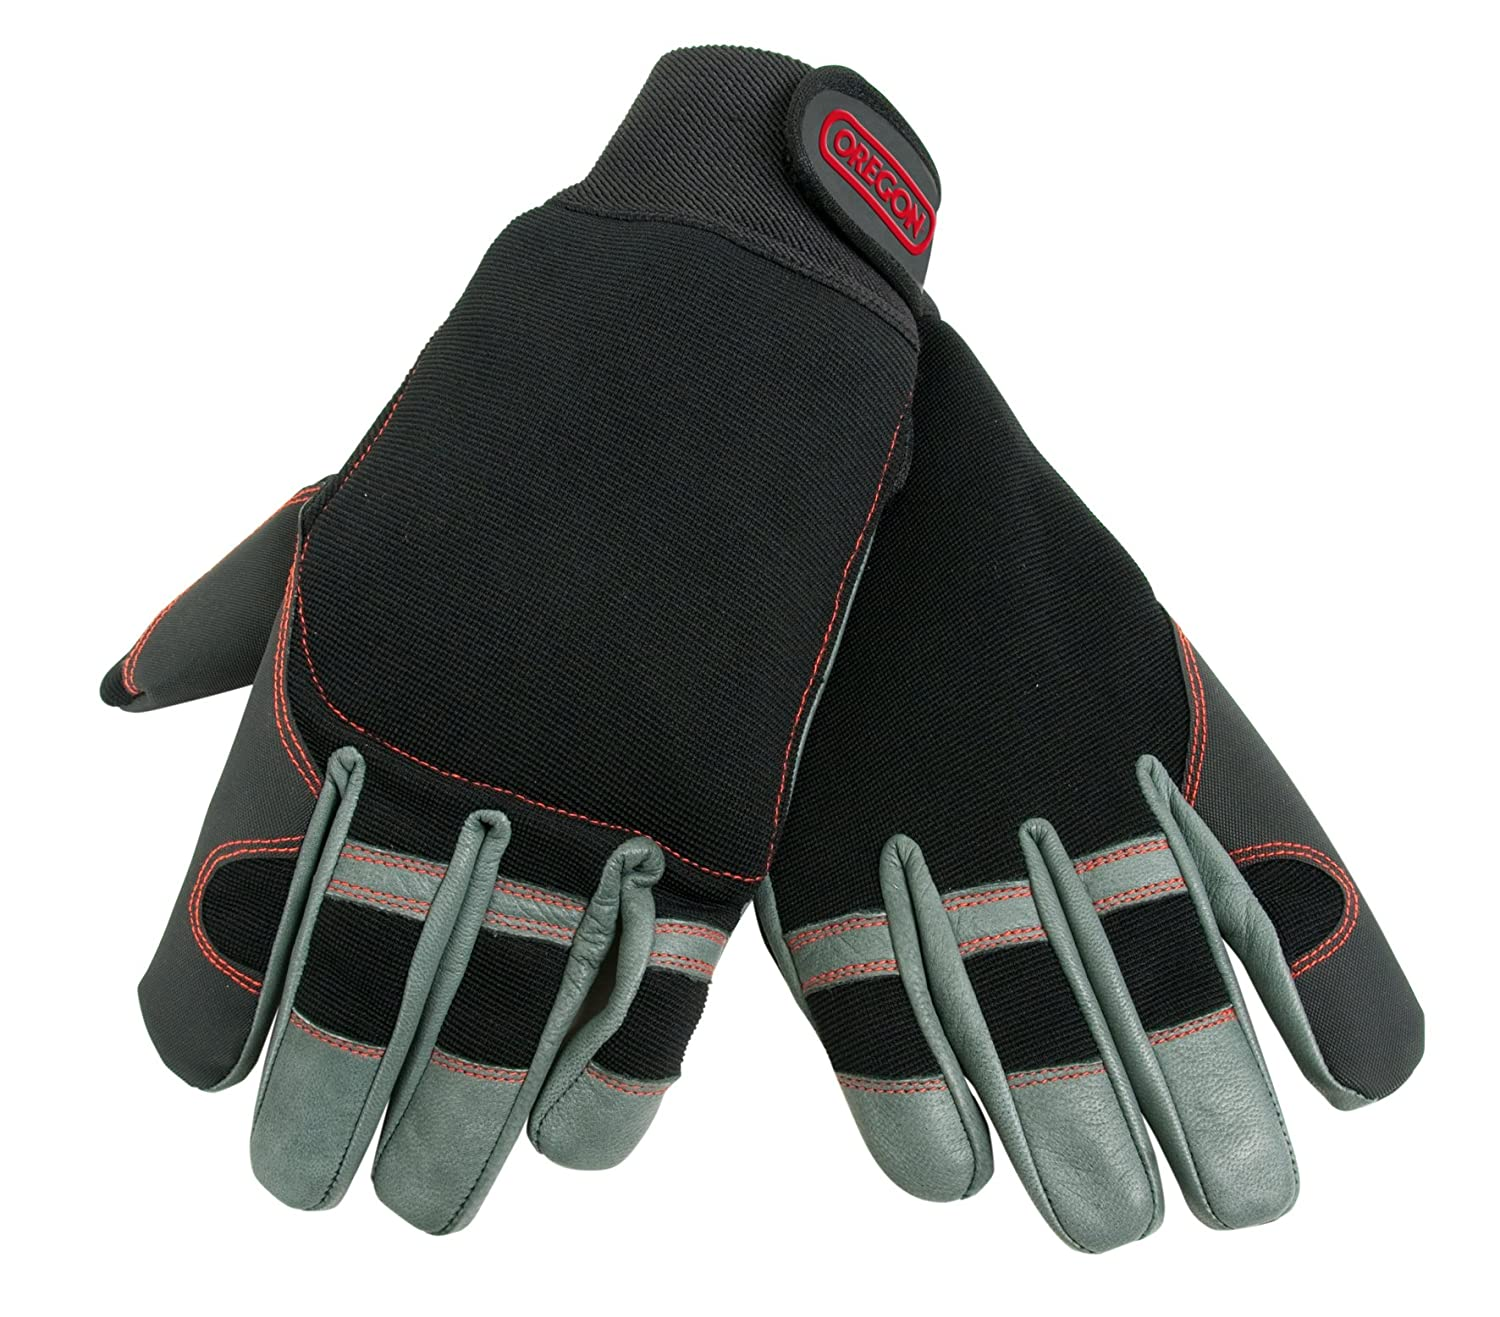 OREGON 295395 XL 4 Way Stretch Leather Chainsaw Protective Glove